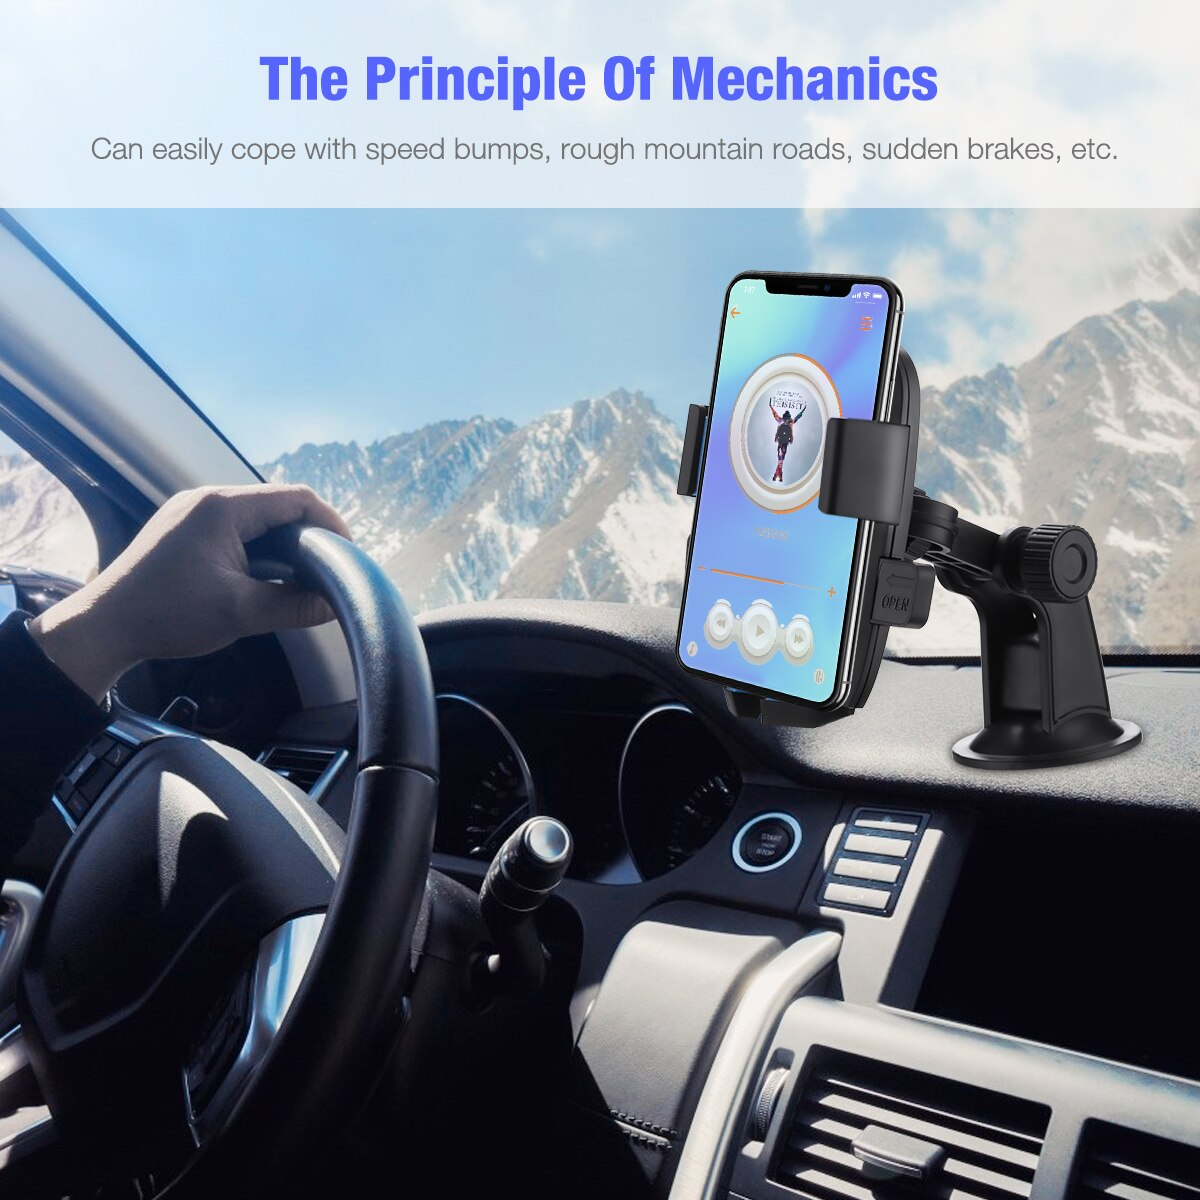 H42a749486eb04129a7c16e370ca184ddo - 360 Degree Rotatable Car Phone Holder For 2.4 to 3.4inch Phone Mount Stand in Car Bracket For Poco x3 pro iPhone Xiaomi Samsung